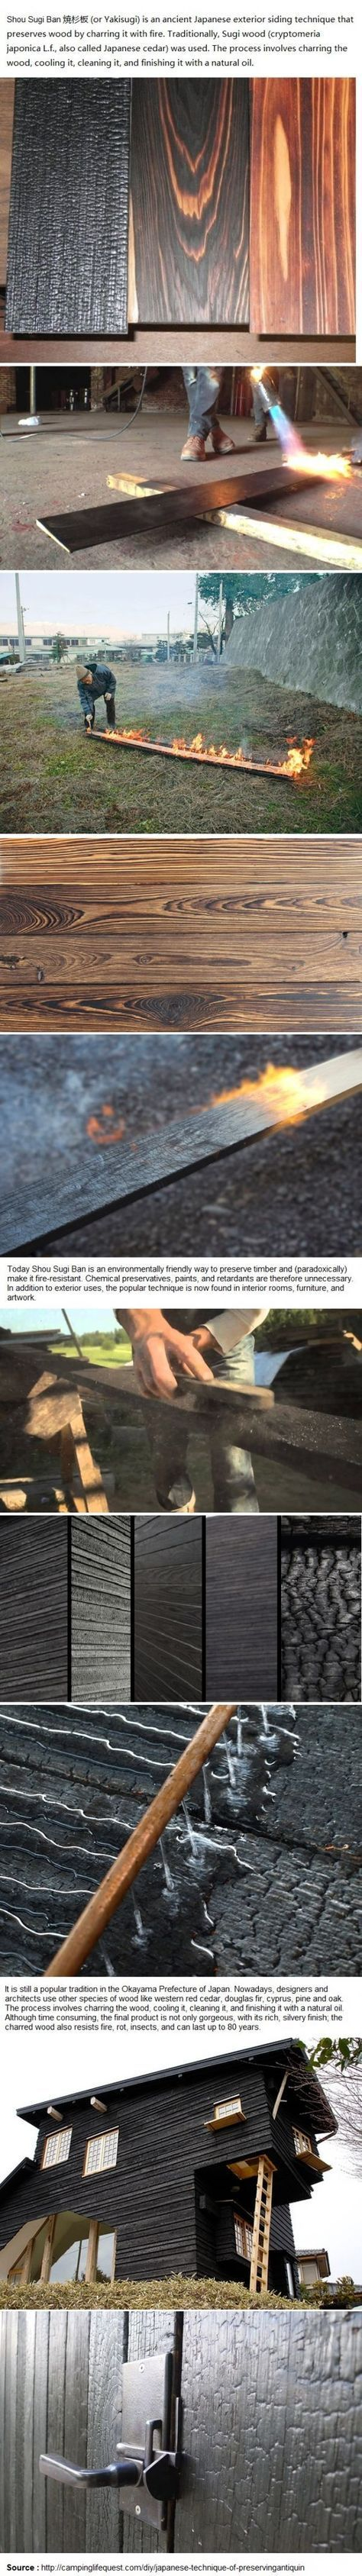 There are lots of valuable tips with your wood working projects found at http://theartofwood.tumblr.com.